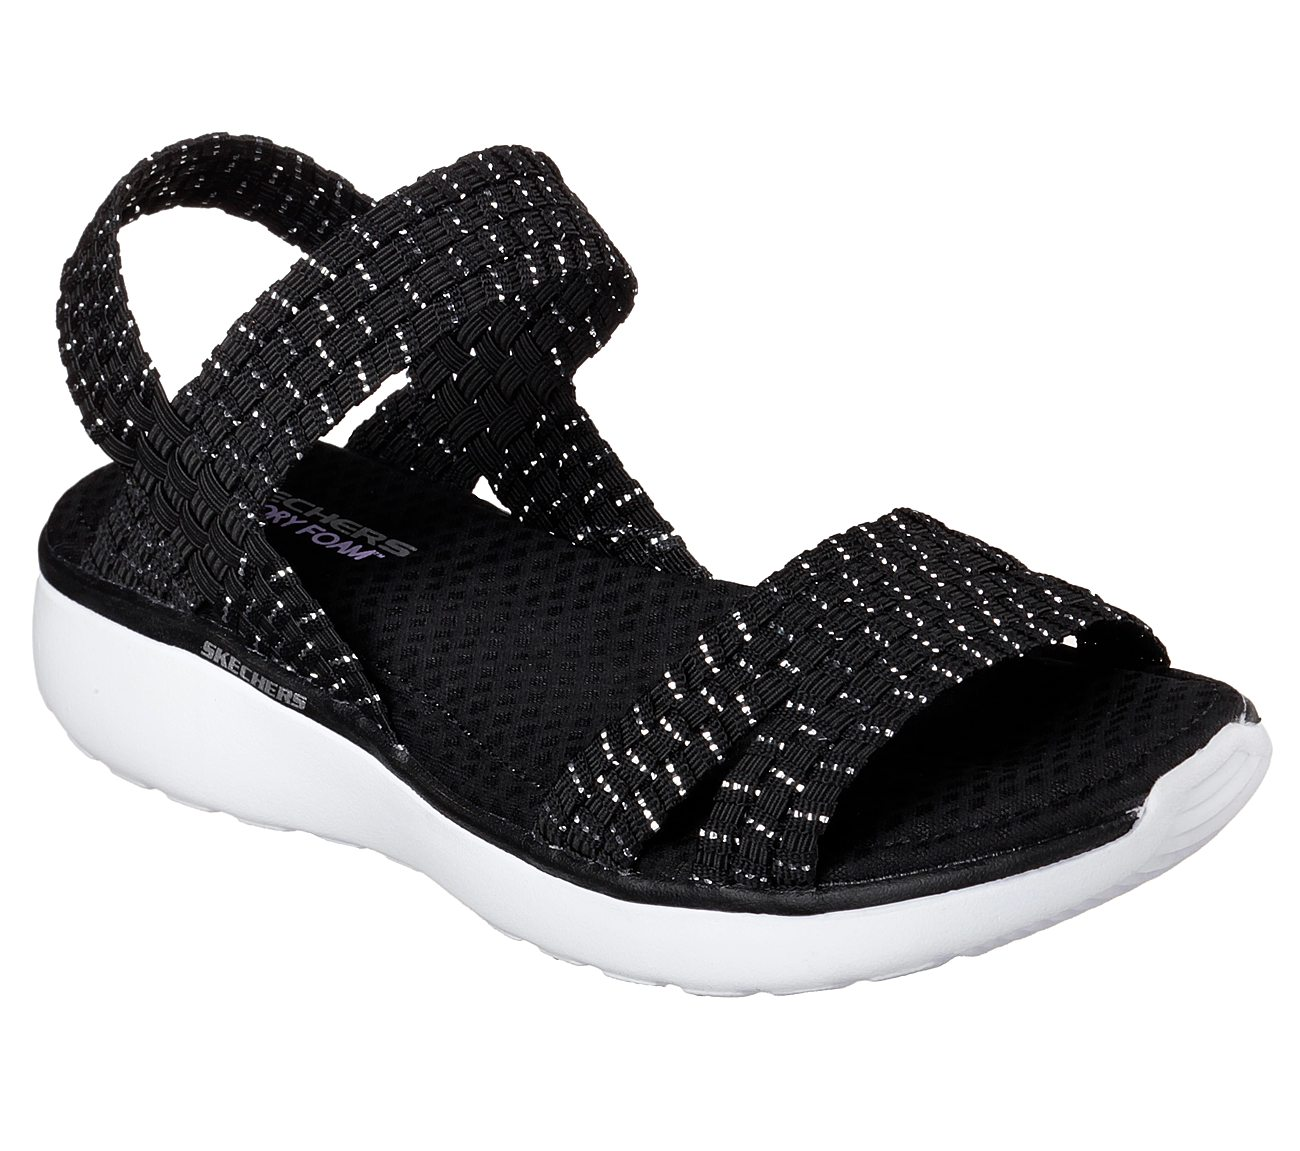 ff4afebee7f4 Buy SKECHERS Counterpart Breeze - Warped Cali Shoes only  44.00